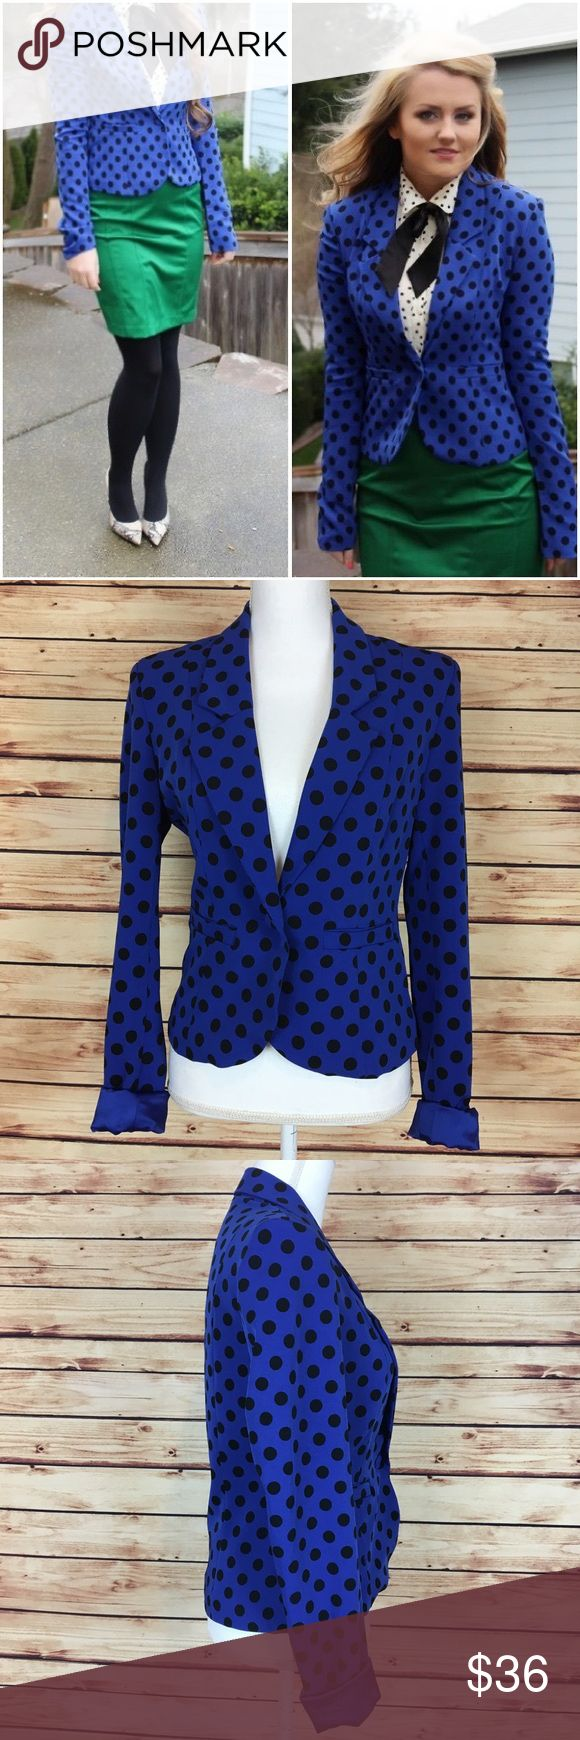 """NWOT Kardashian Kollection Blue Polka Dot Blazer Kardashian Kollection blazer. Blue with black polka dots. Long sleeve. Collared. Pockets, still sealed. One button closure. XS.  New with tags and no flaws.  Measurements are approximately: 35"""" bust, 31"""" waist, and 21.5"""" length.  96% polyester 4% elastane. Polyester lining.  No trades. All items come from a pet friendly home. Bundle to save! Kardashian Kollection Jackets & Coats Blazers"""